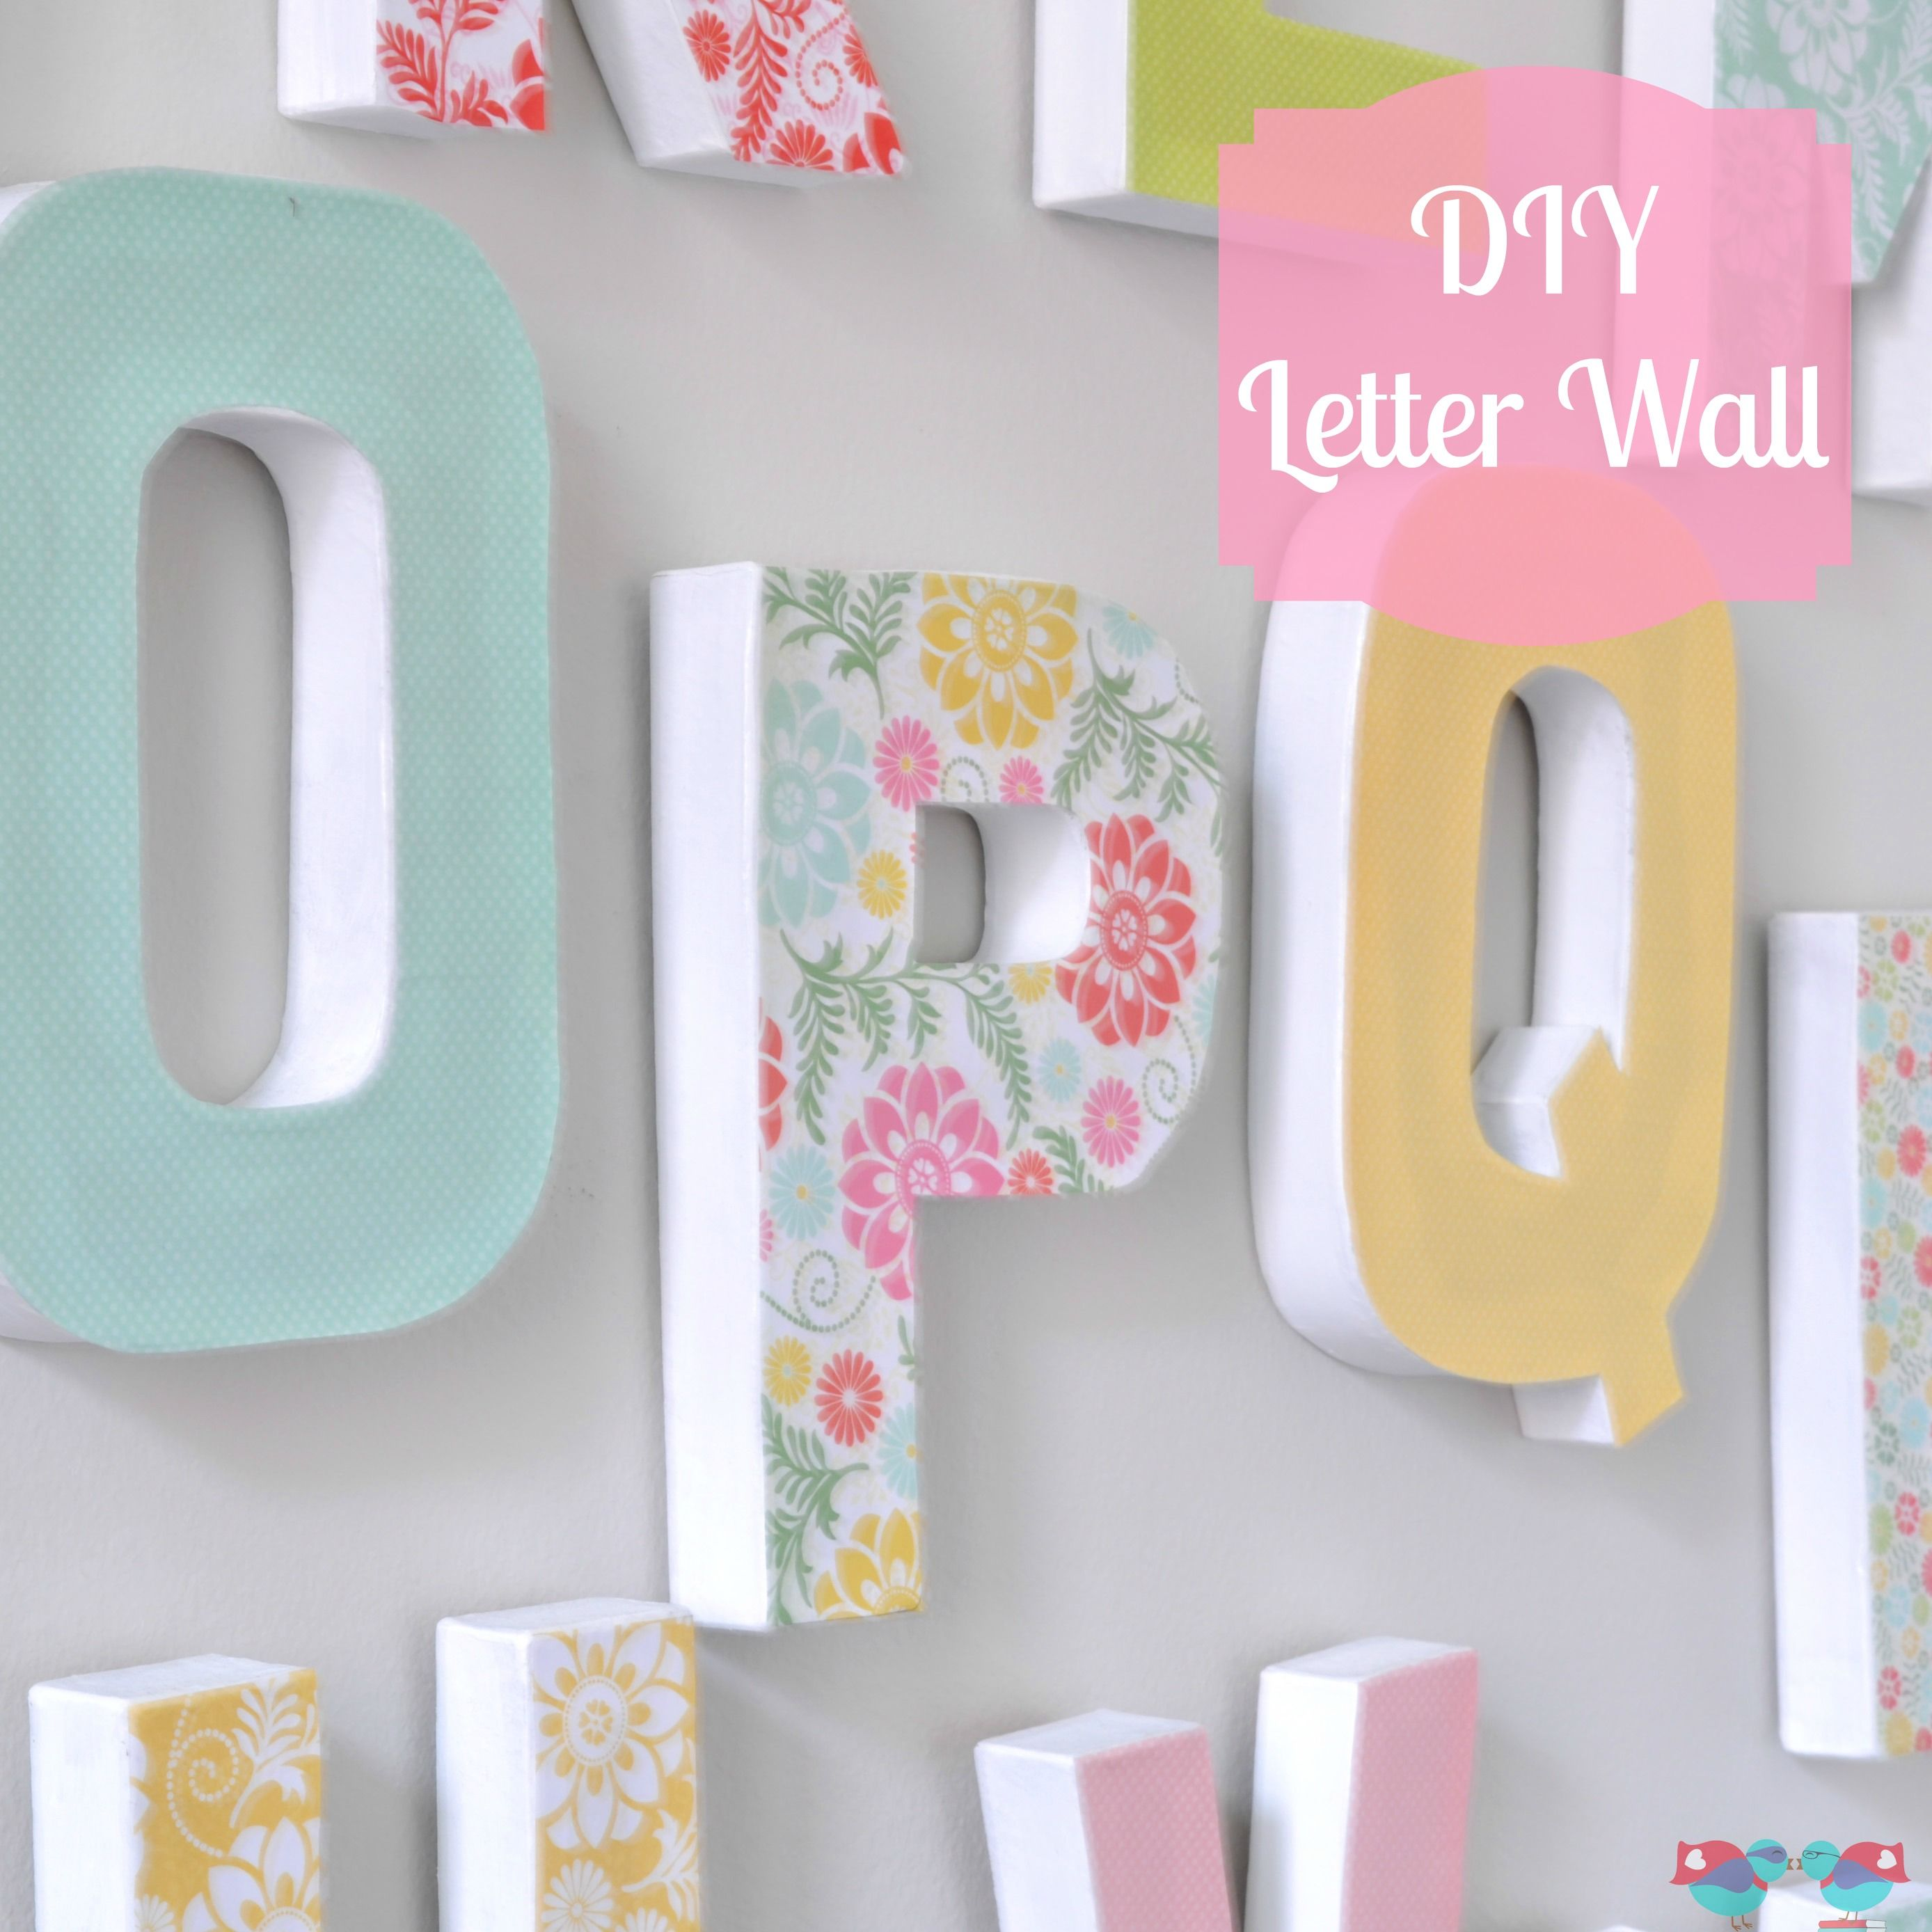 How To Make Your Own Letter Wall  Letter Wall Diy Letters And Walls